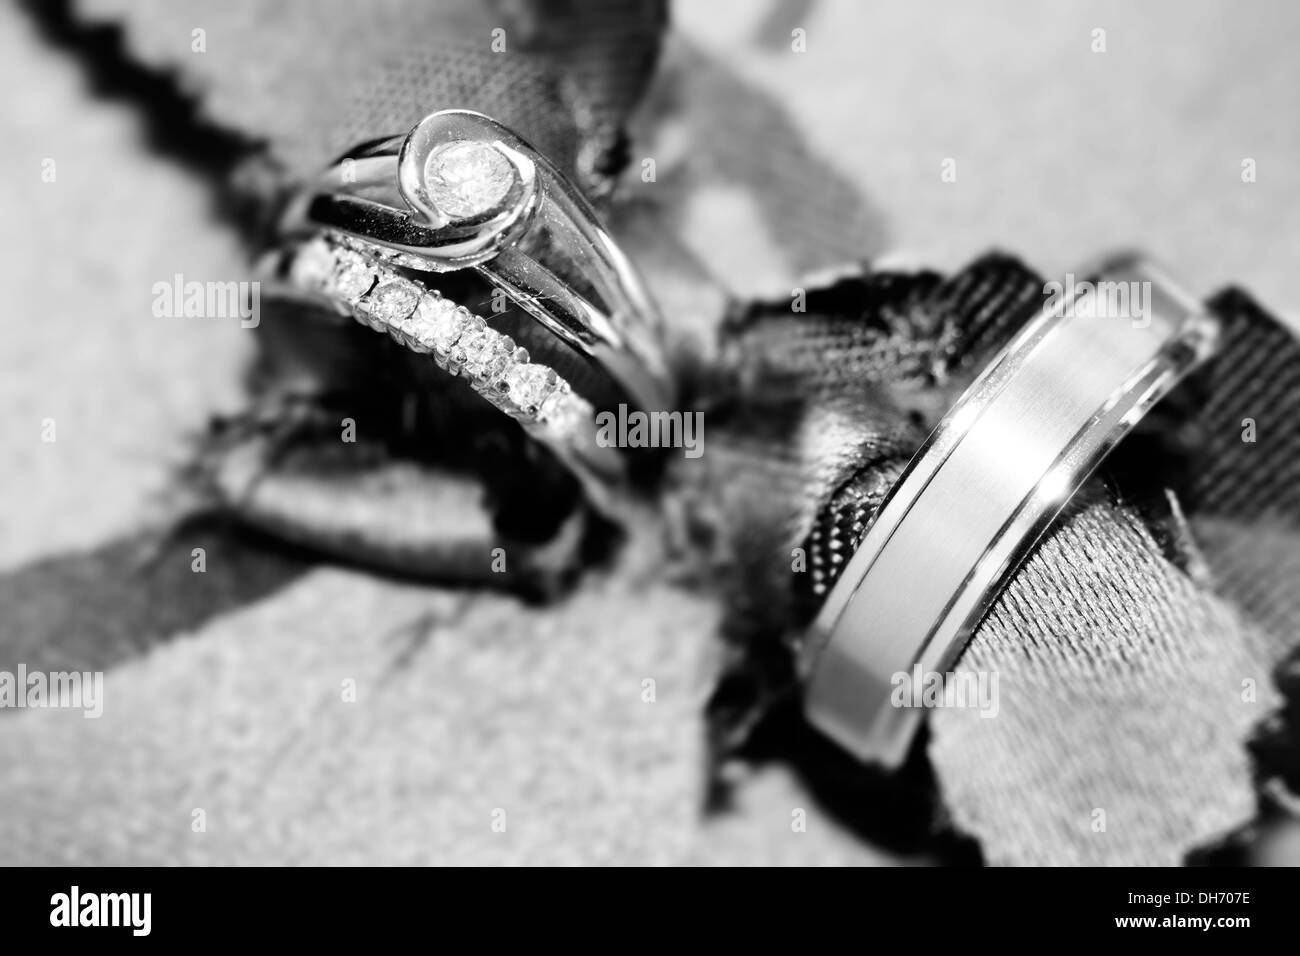 Wedding rings abstract with brown pillow decorated with jewel-black and white photo - Stock Image